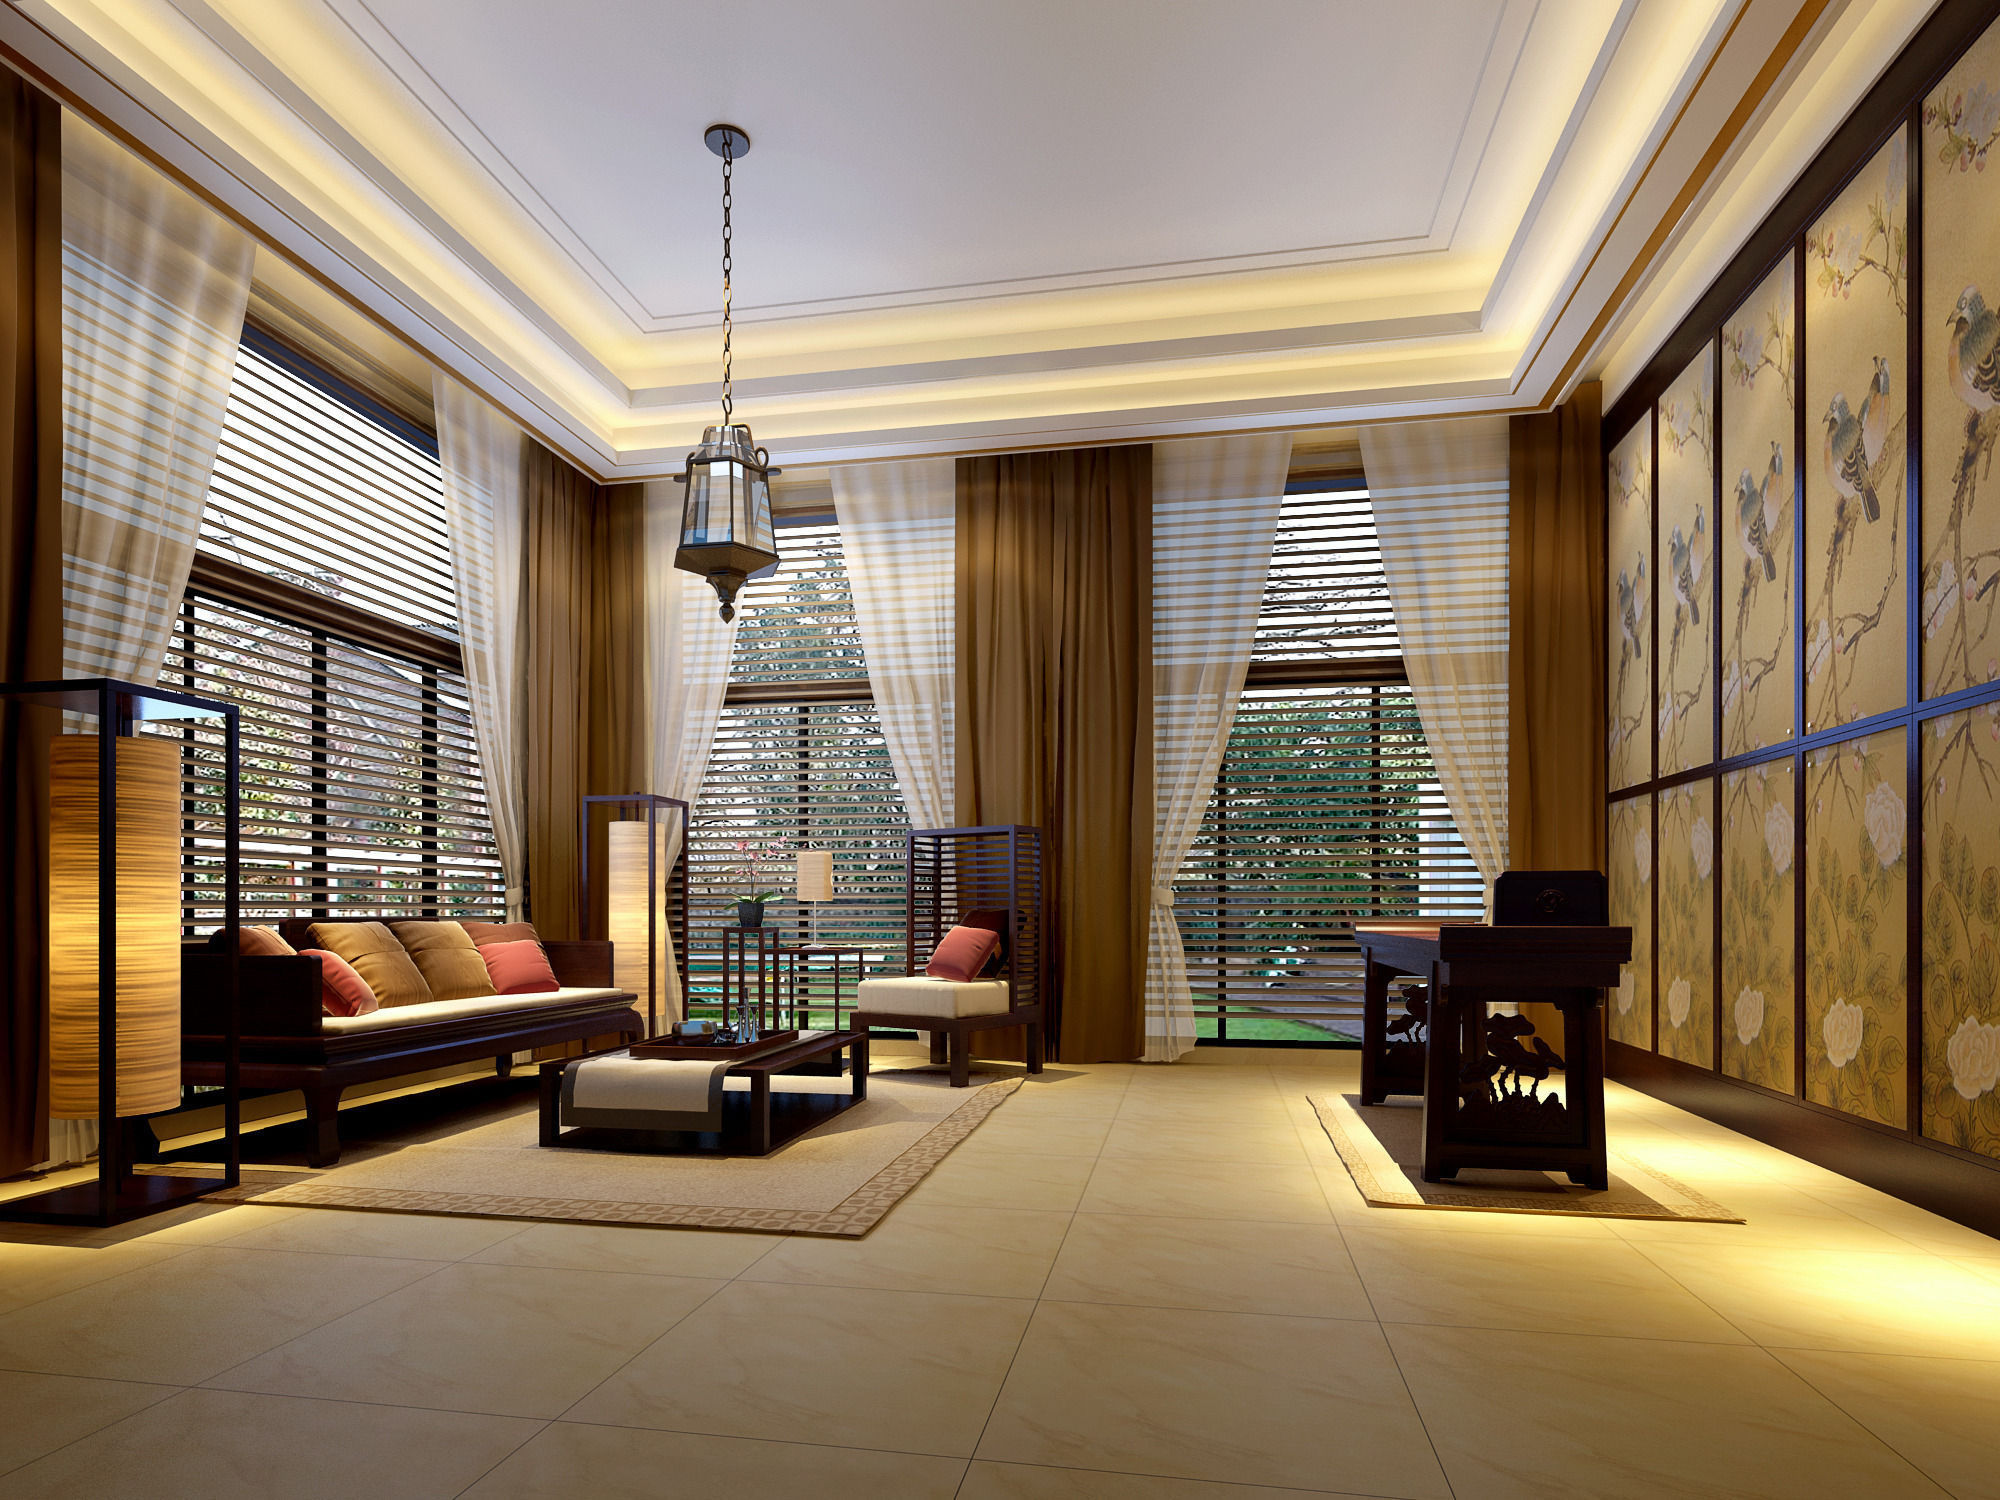 Realistic House Design Games HOUSE DESIGN  Realistic Interior Design Games  1 Online Realistic House Design. Realistic Interior Design Games